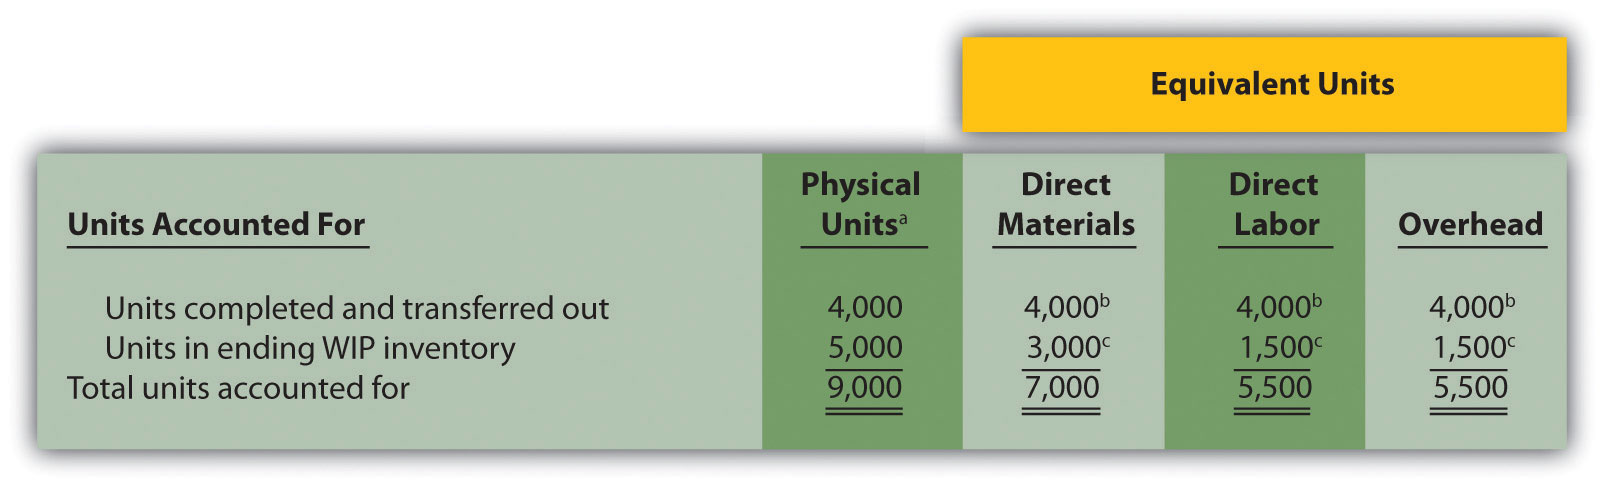 Step 1. Figure 4.4 Flow of Units and Equivalent Unit Calculations for Desk Products' Assembly Department: